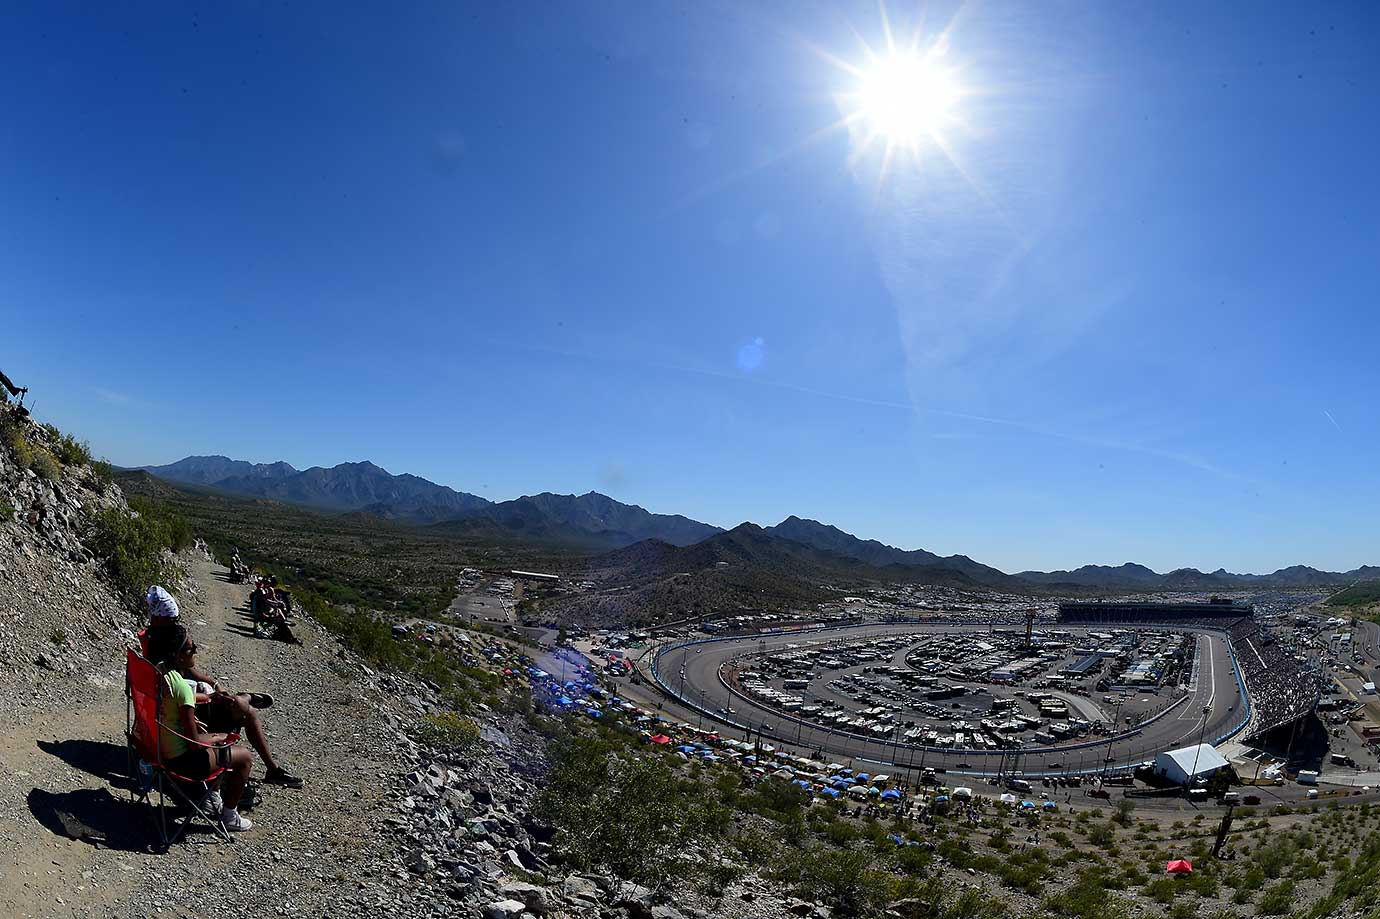 Race fans enjoy the action during the NASCAR Sprint Cup Series Good Sam 500 at Phoenix International Raceway.